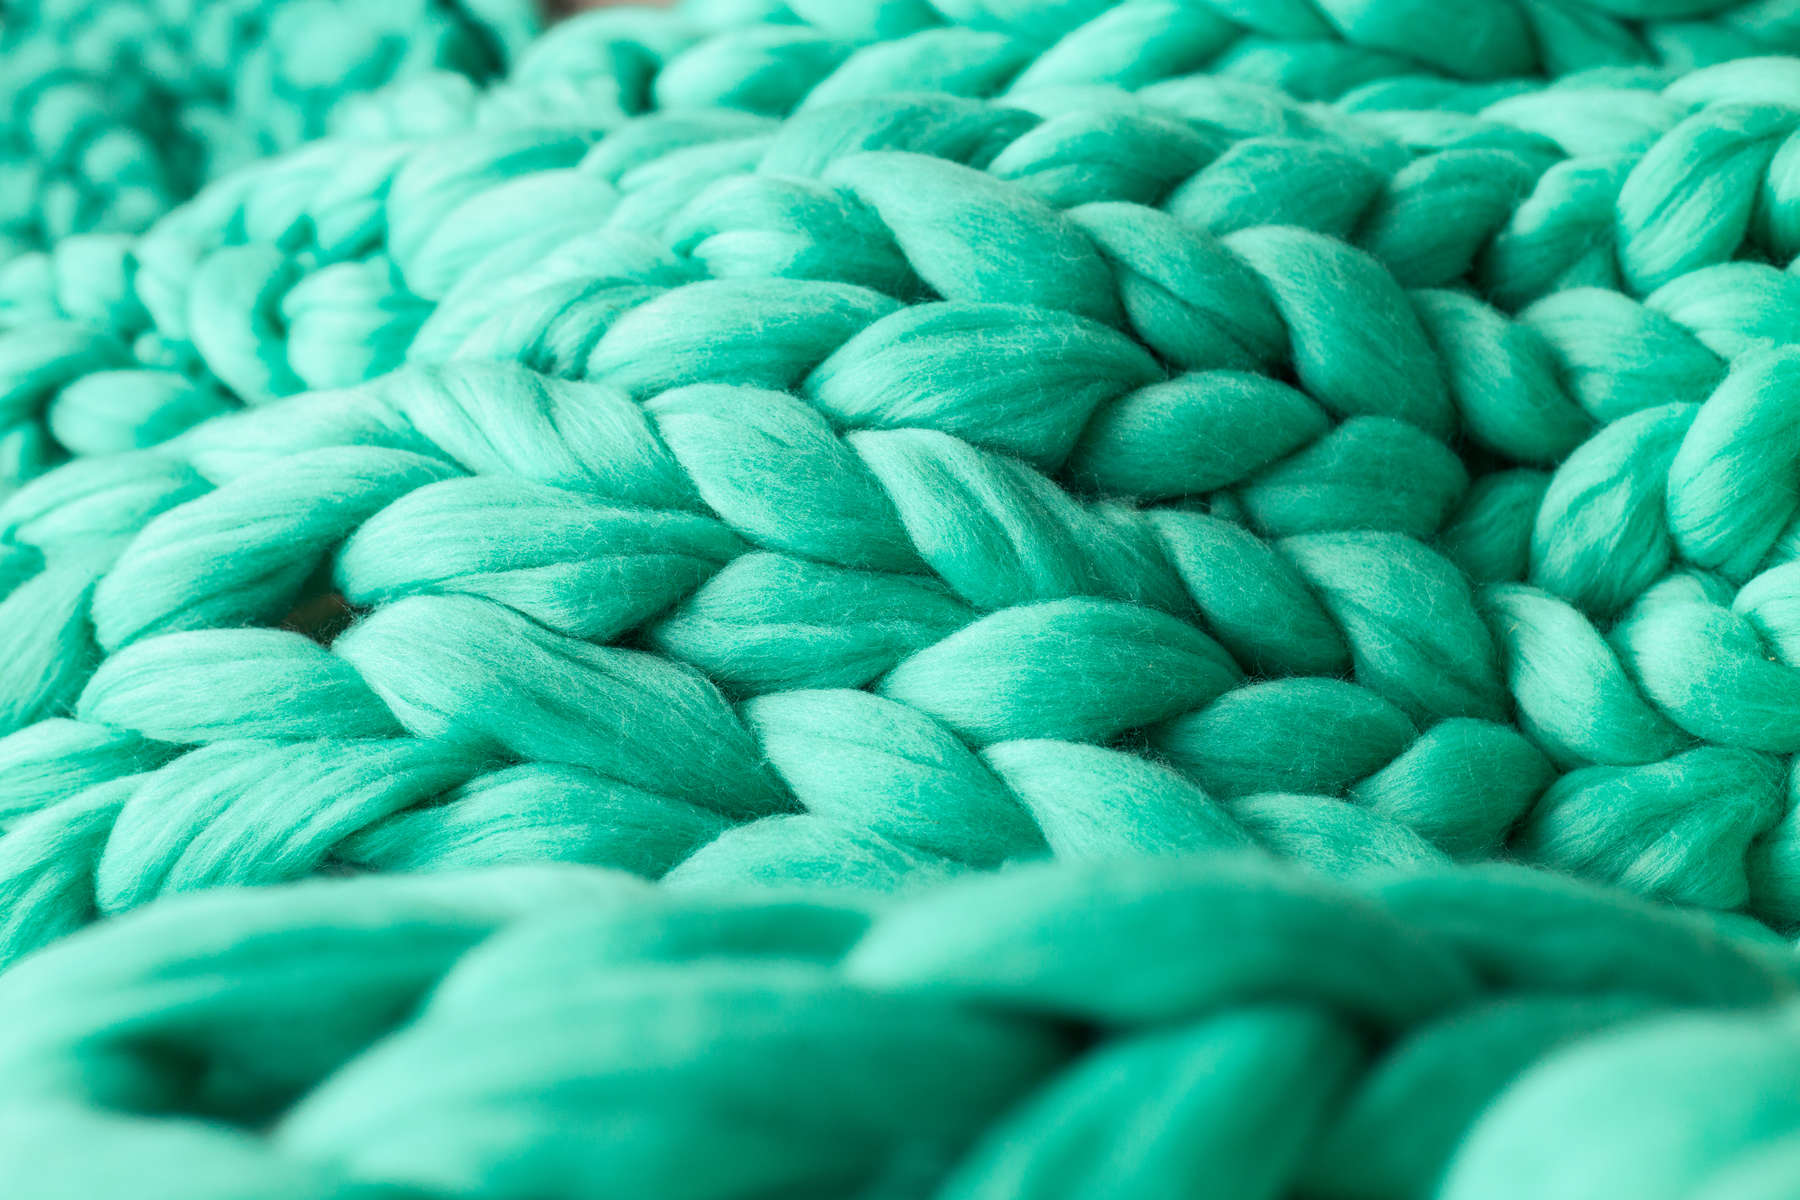 Close-up of knitted blanket